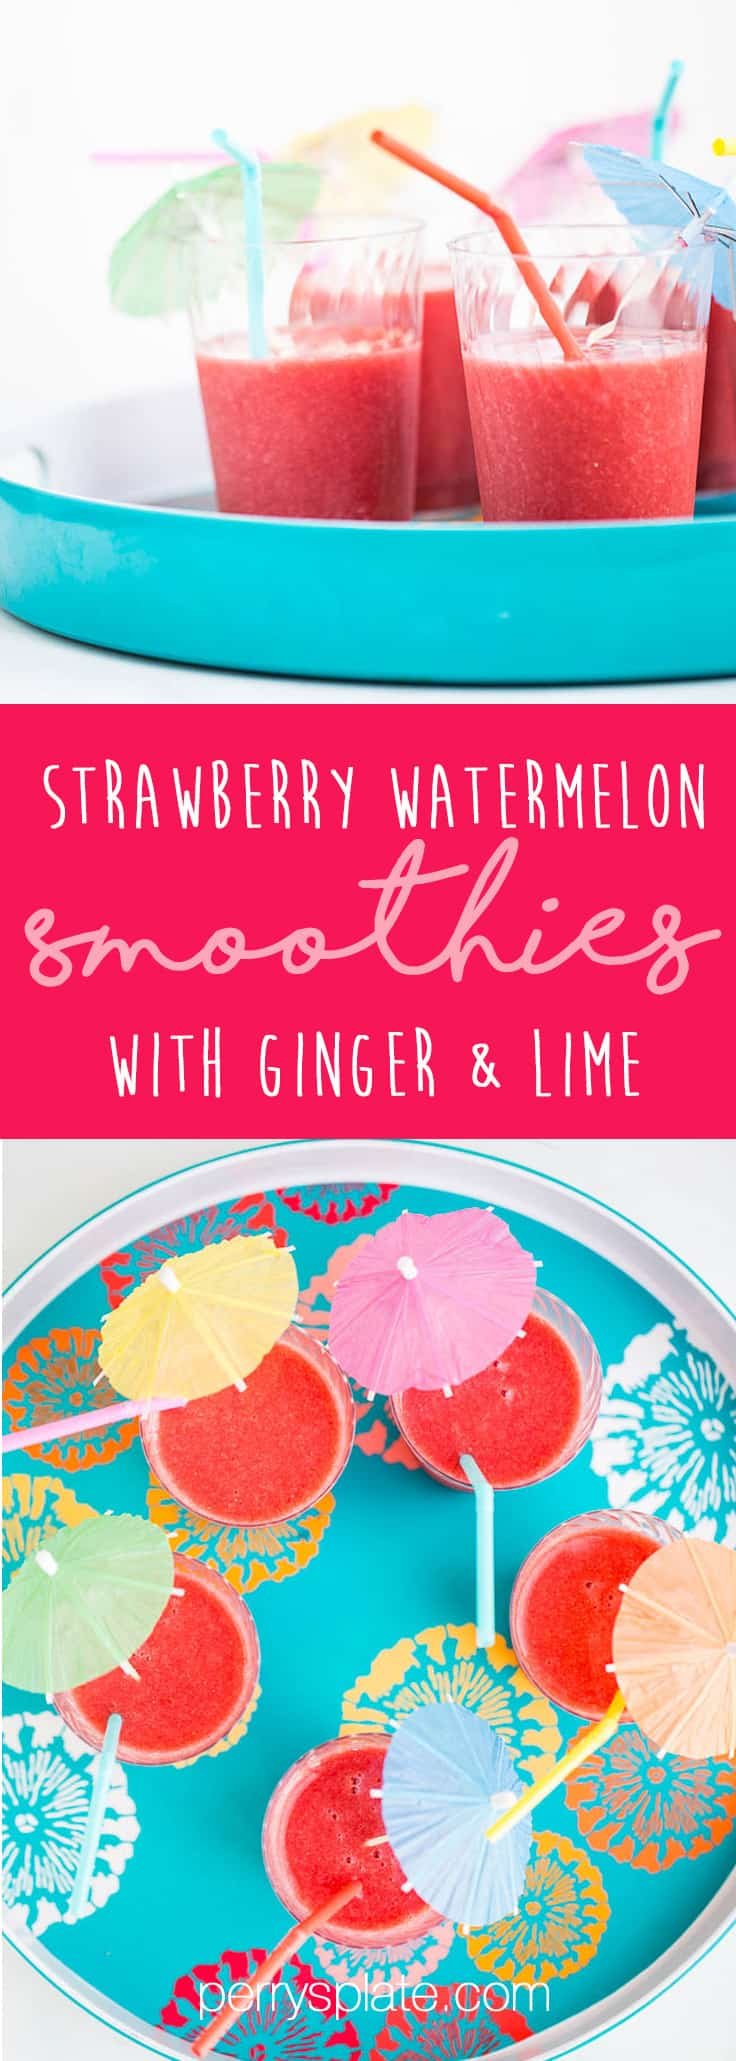 This Strawberry Watermelon Smoothie is my all-time favorite summer smoothie -- perfect to make when strawberries and watermelon are ripe and sweet! | perrysplate.com